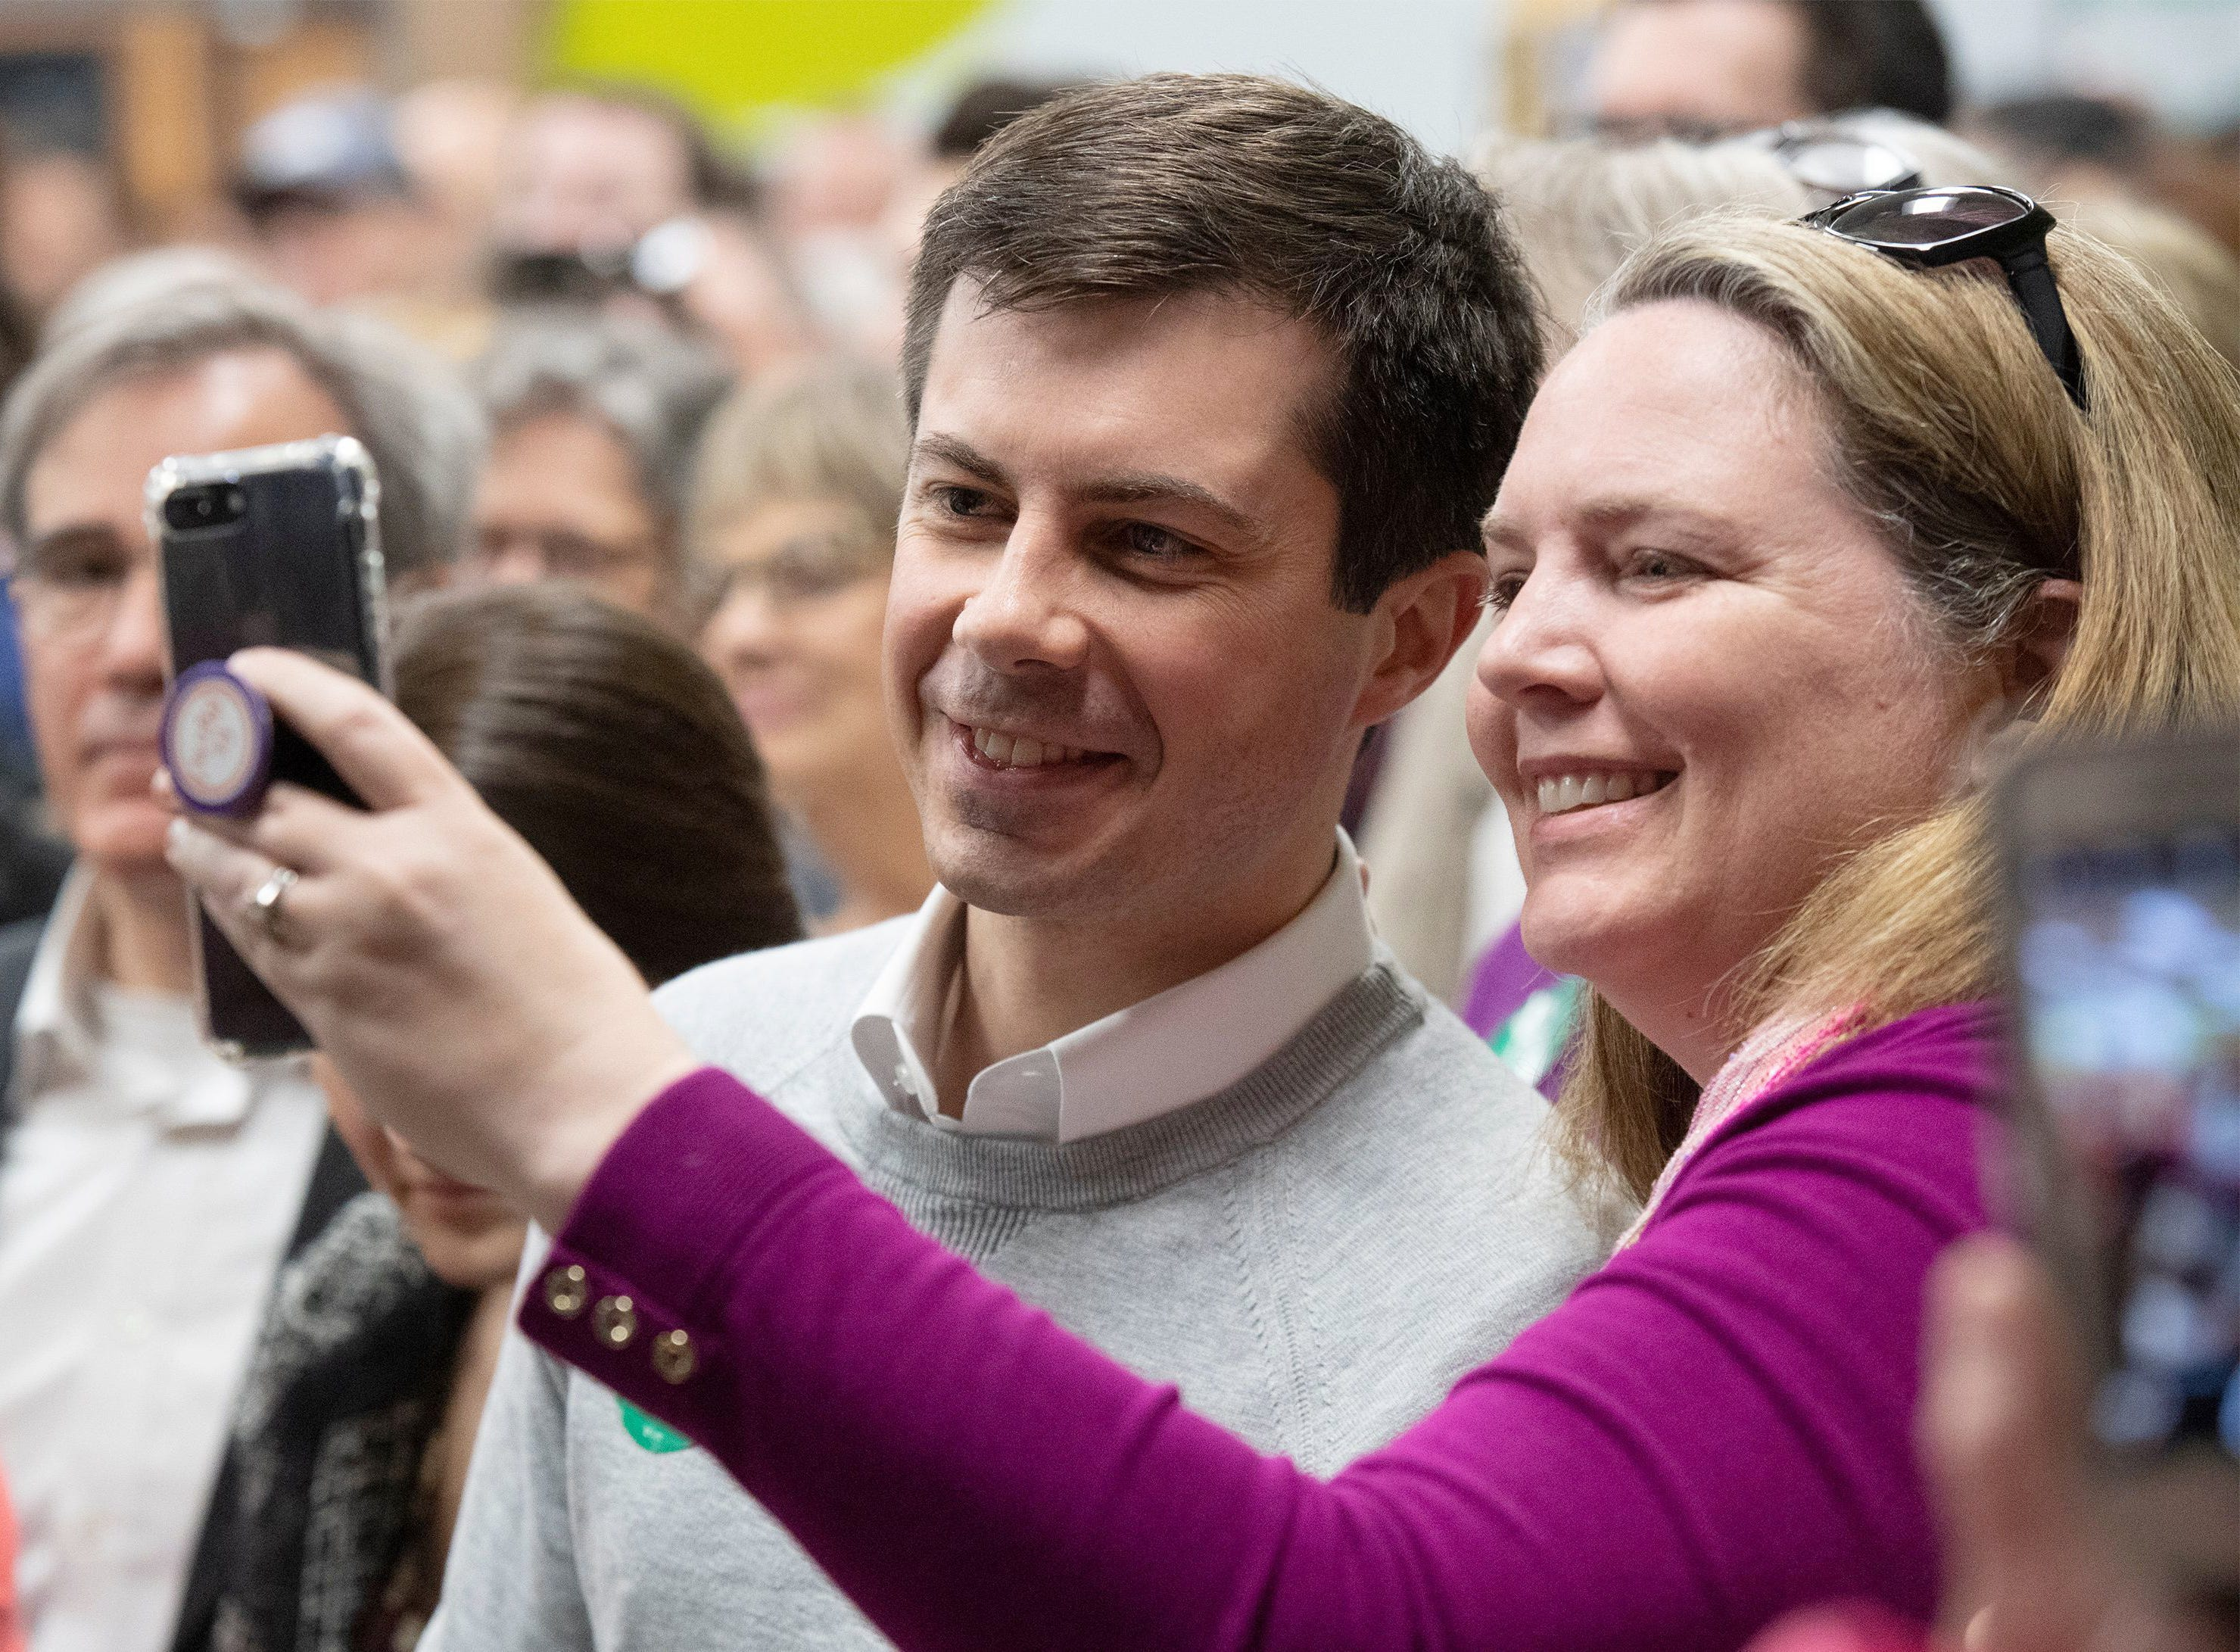 Salley Ouellette, from Pendleton, S.C., takes a photo with Pete Buttigieg at the Greenville County Democrats monthly breakfast held at Upstate Circle of Friends on Mar. 23, 2019 in Greenville, S.C. Buttigieg announced his bid on April 14, 2019, to run for president.